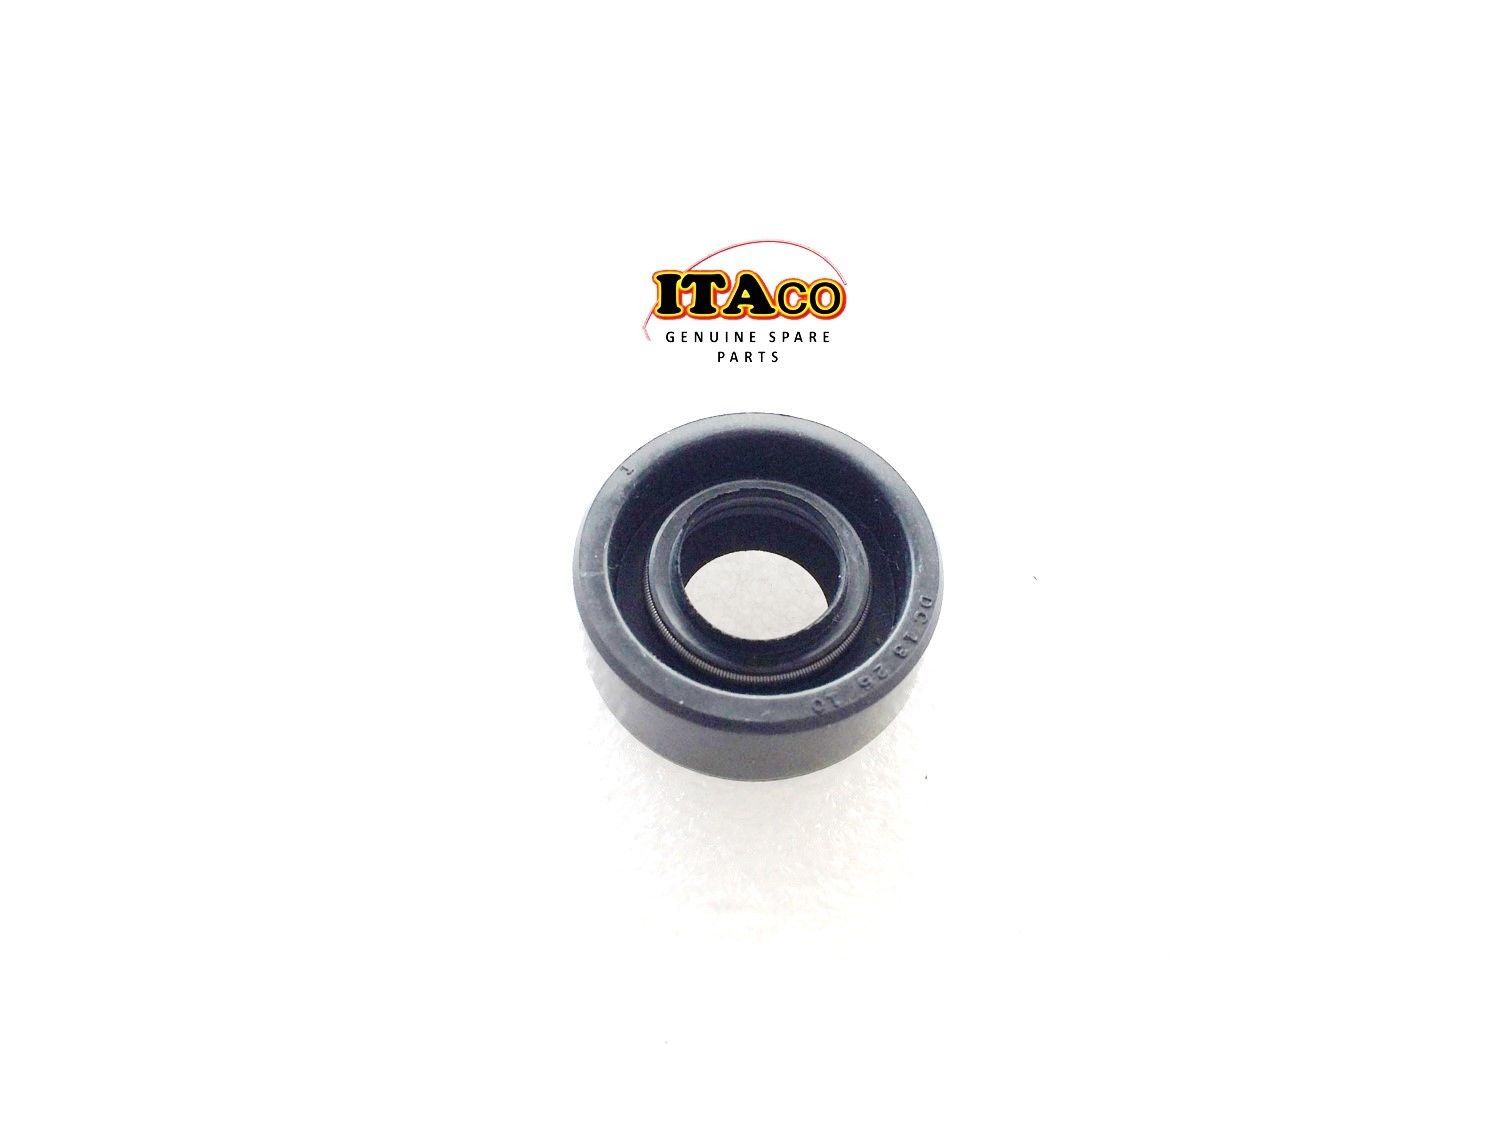 2X OIL SEAL SEALS 93101-17054 S-TYPE fit Yamaha Outboard 8HP 9HP 9.9HP 15HP 20HP